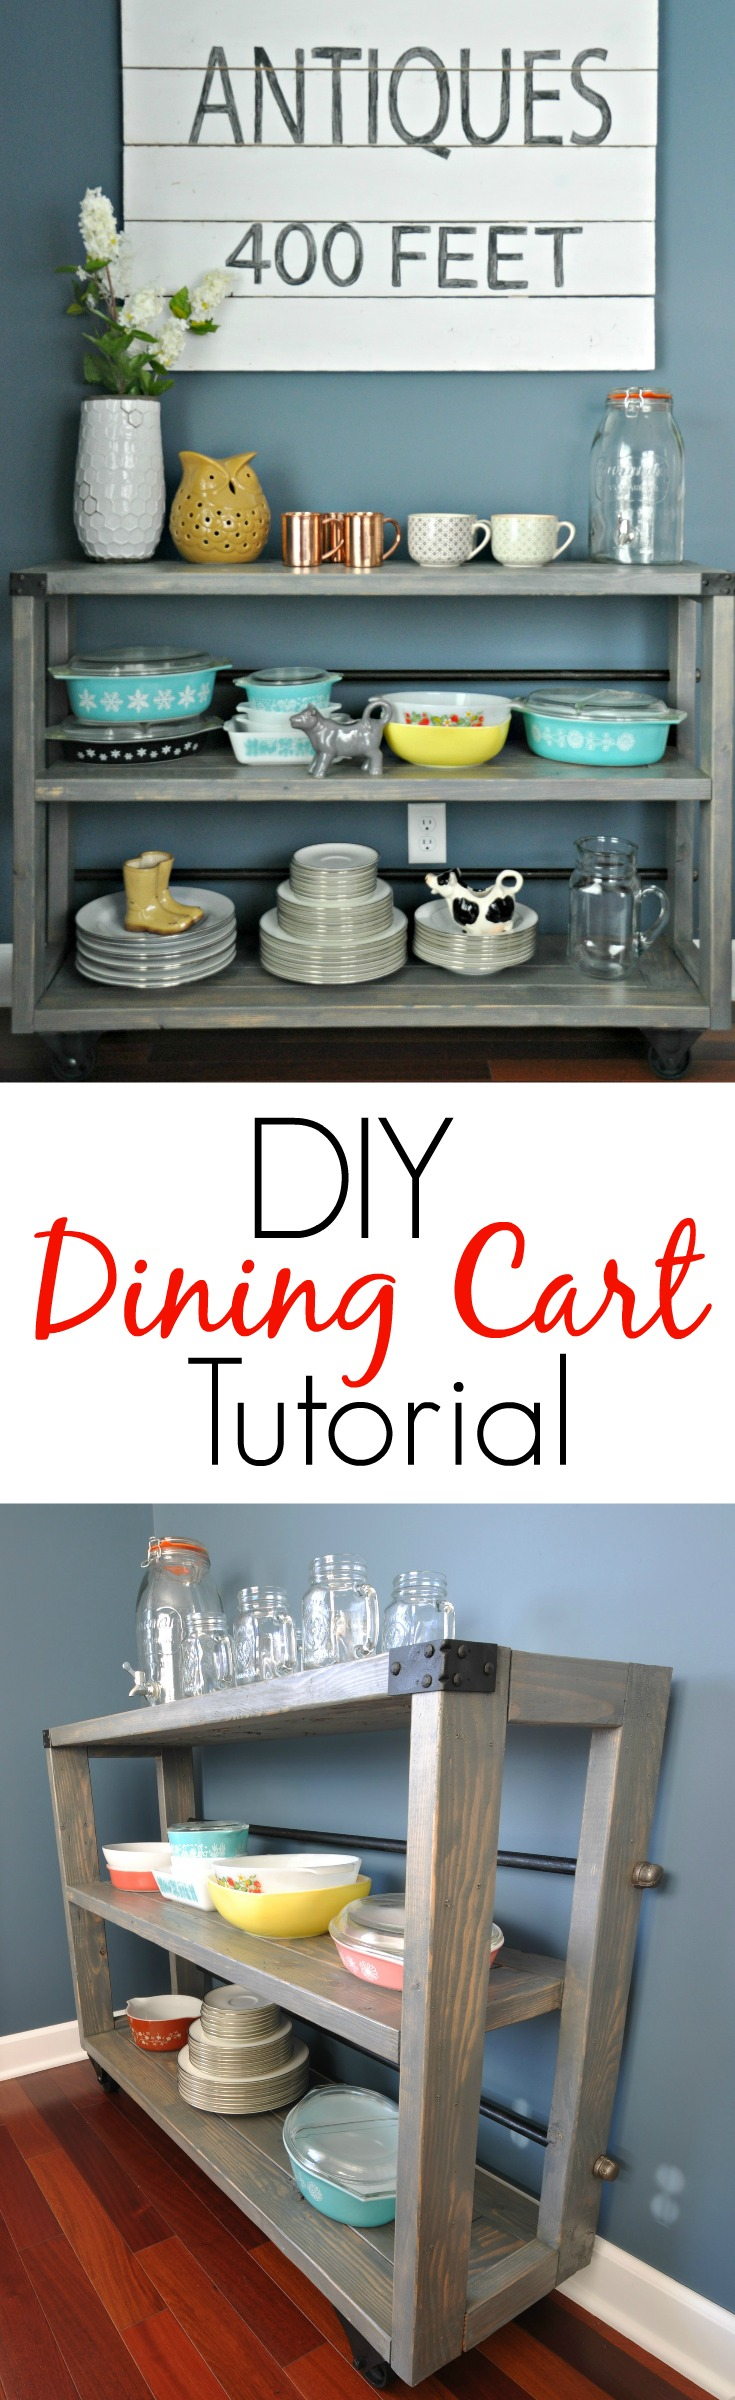 Diy Restaurant Decor : Diy dining cart tutorial — decor and the dog